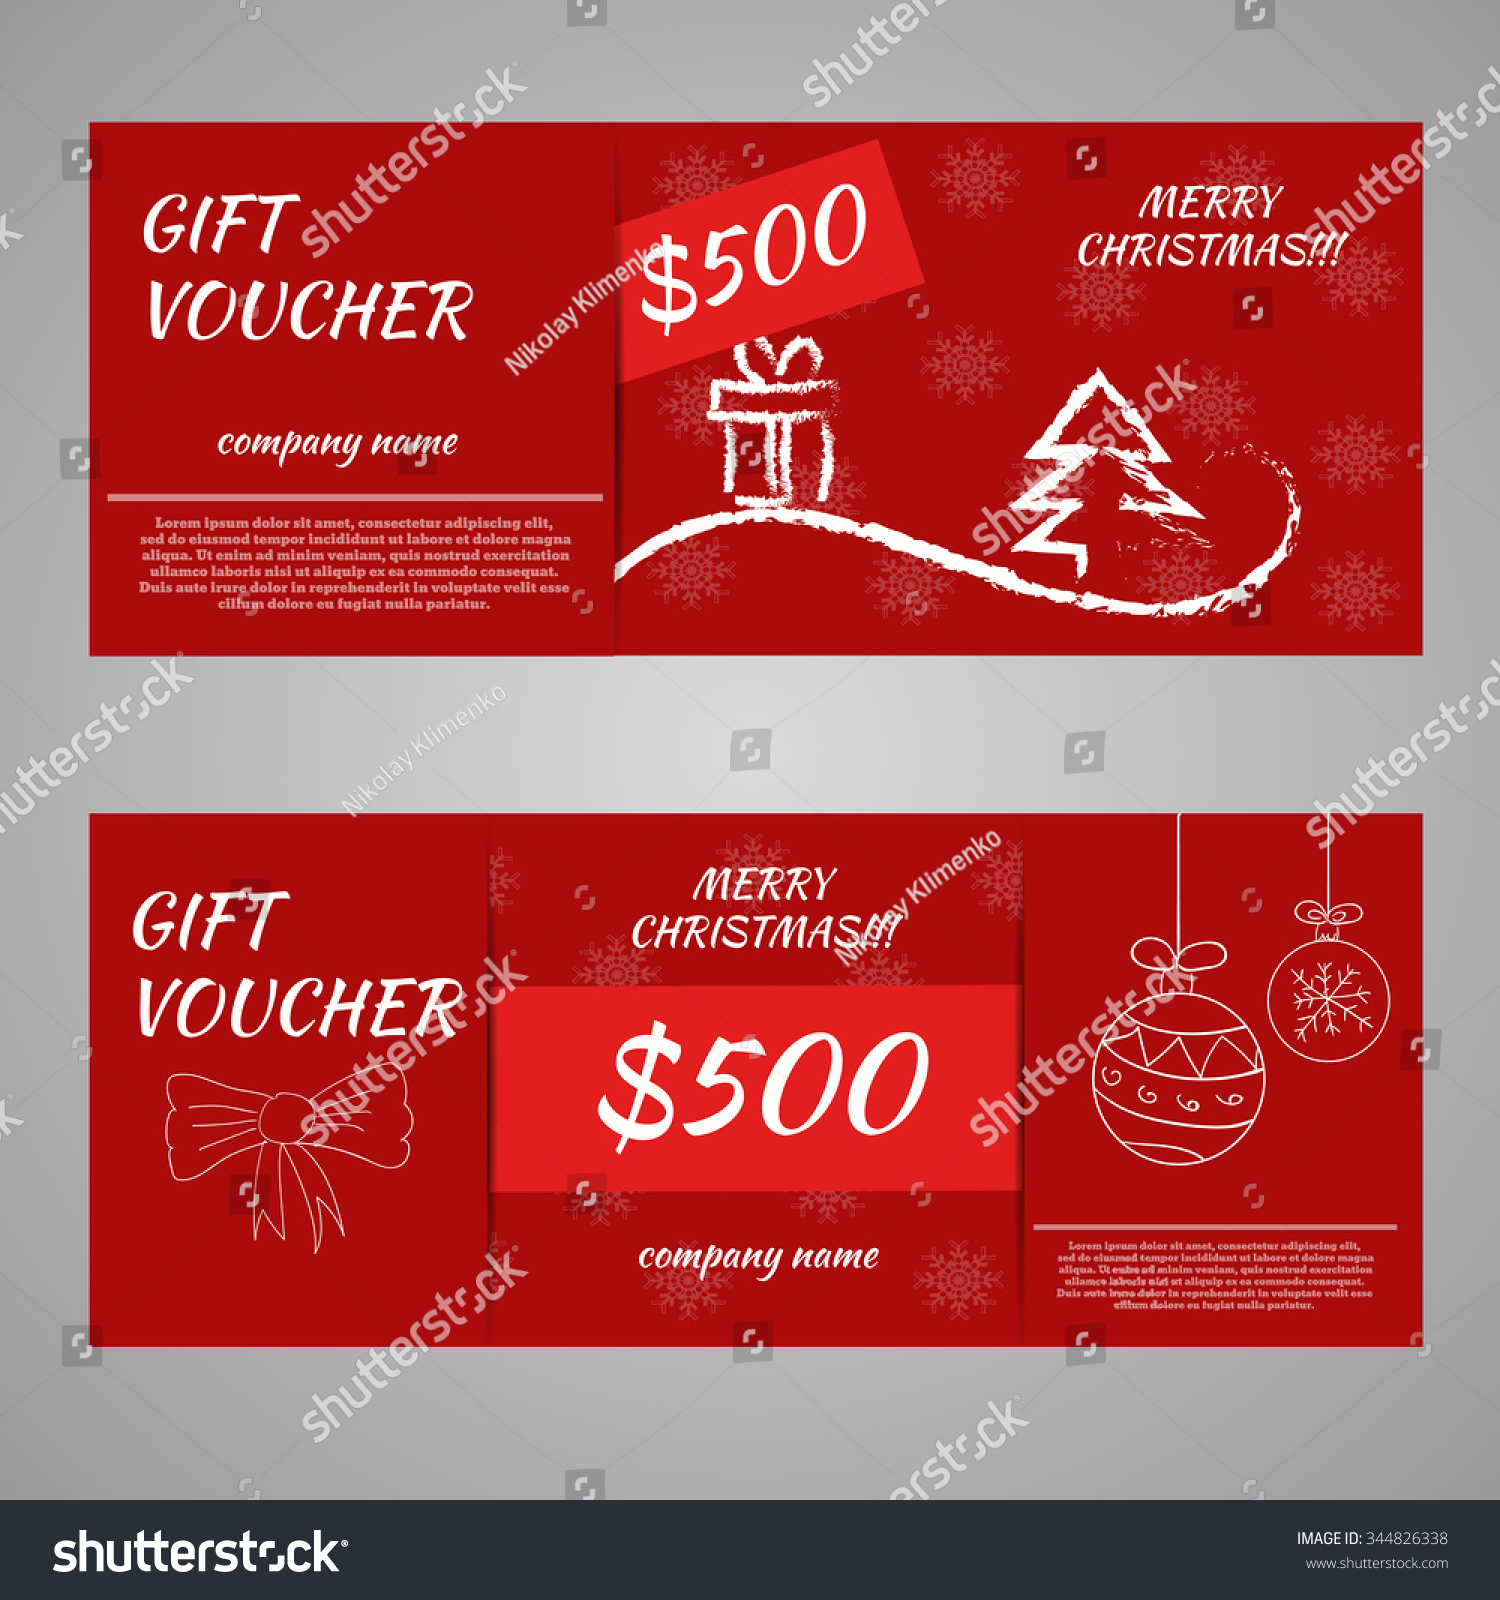 red christmas new year gift voucher stock vector 344826338 red christmas and new year gift voucher certificate coupon template can be use for business